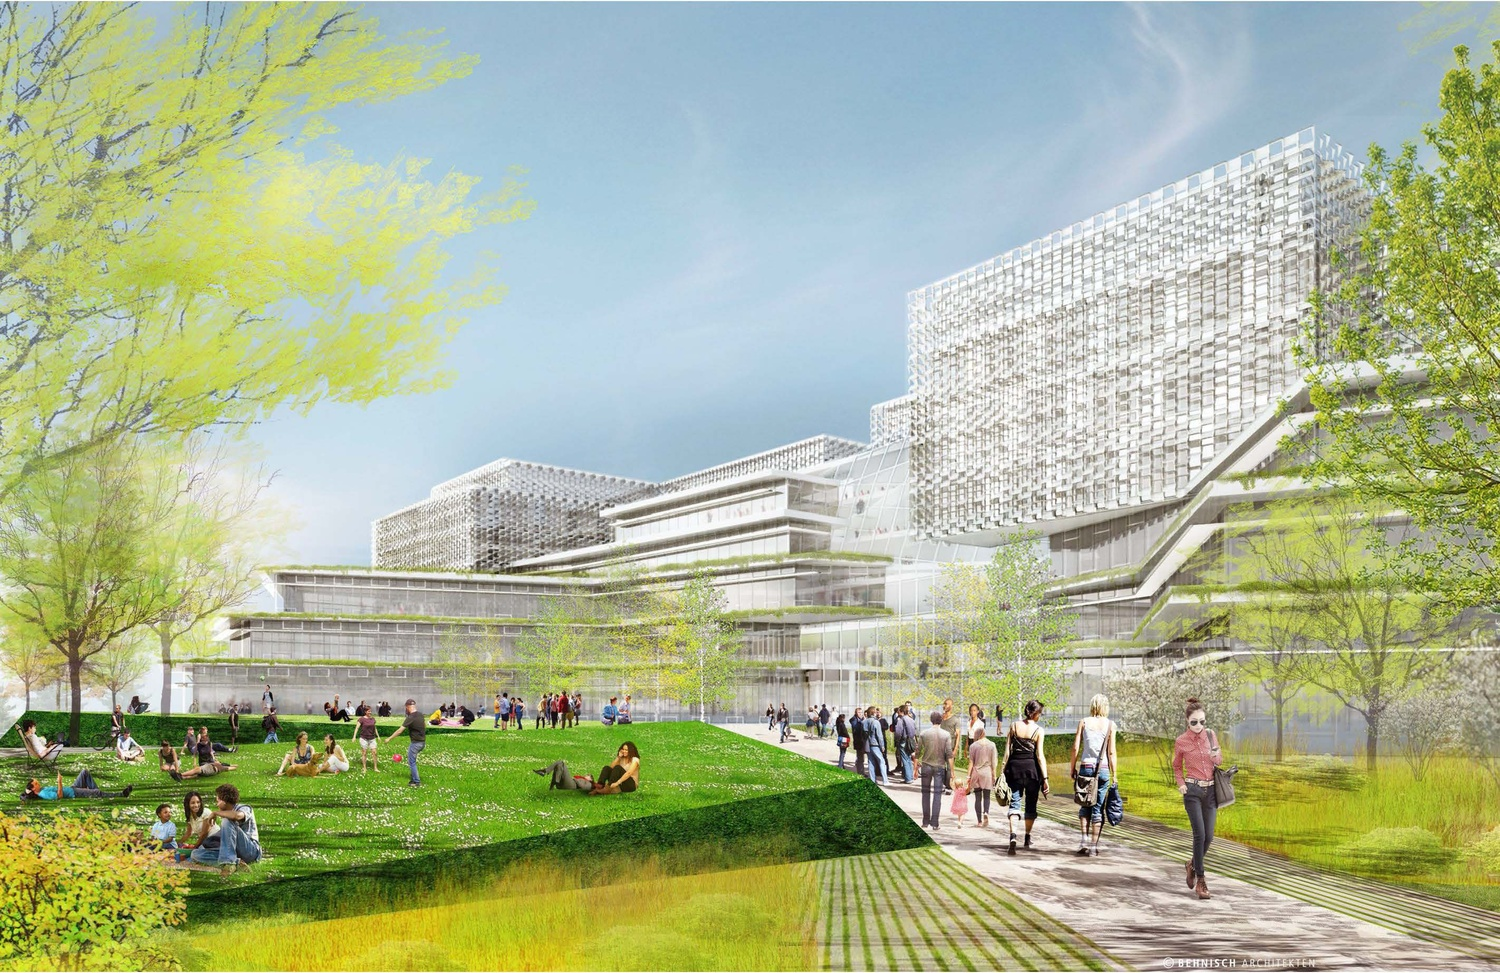 Plans for the science complex include classrooms, labs, lounge spaces, an exhibition space, a cafeteria, and 250 parking spots.